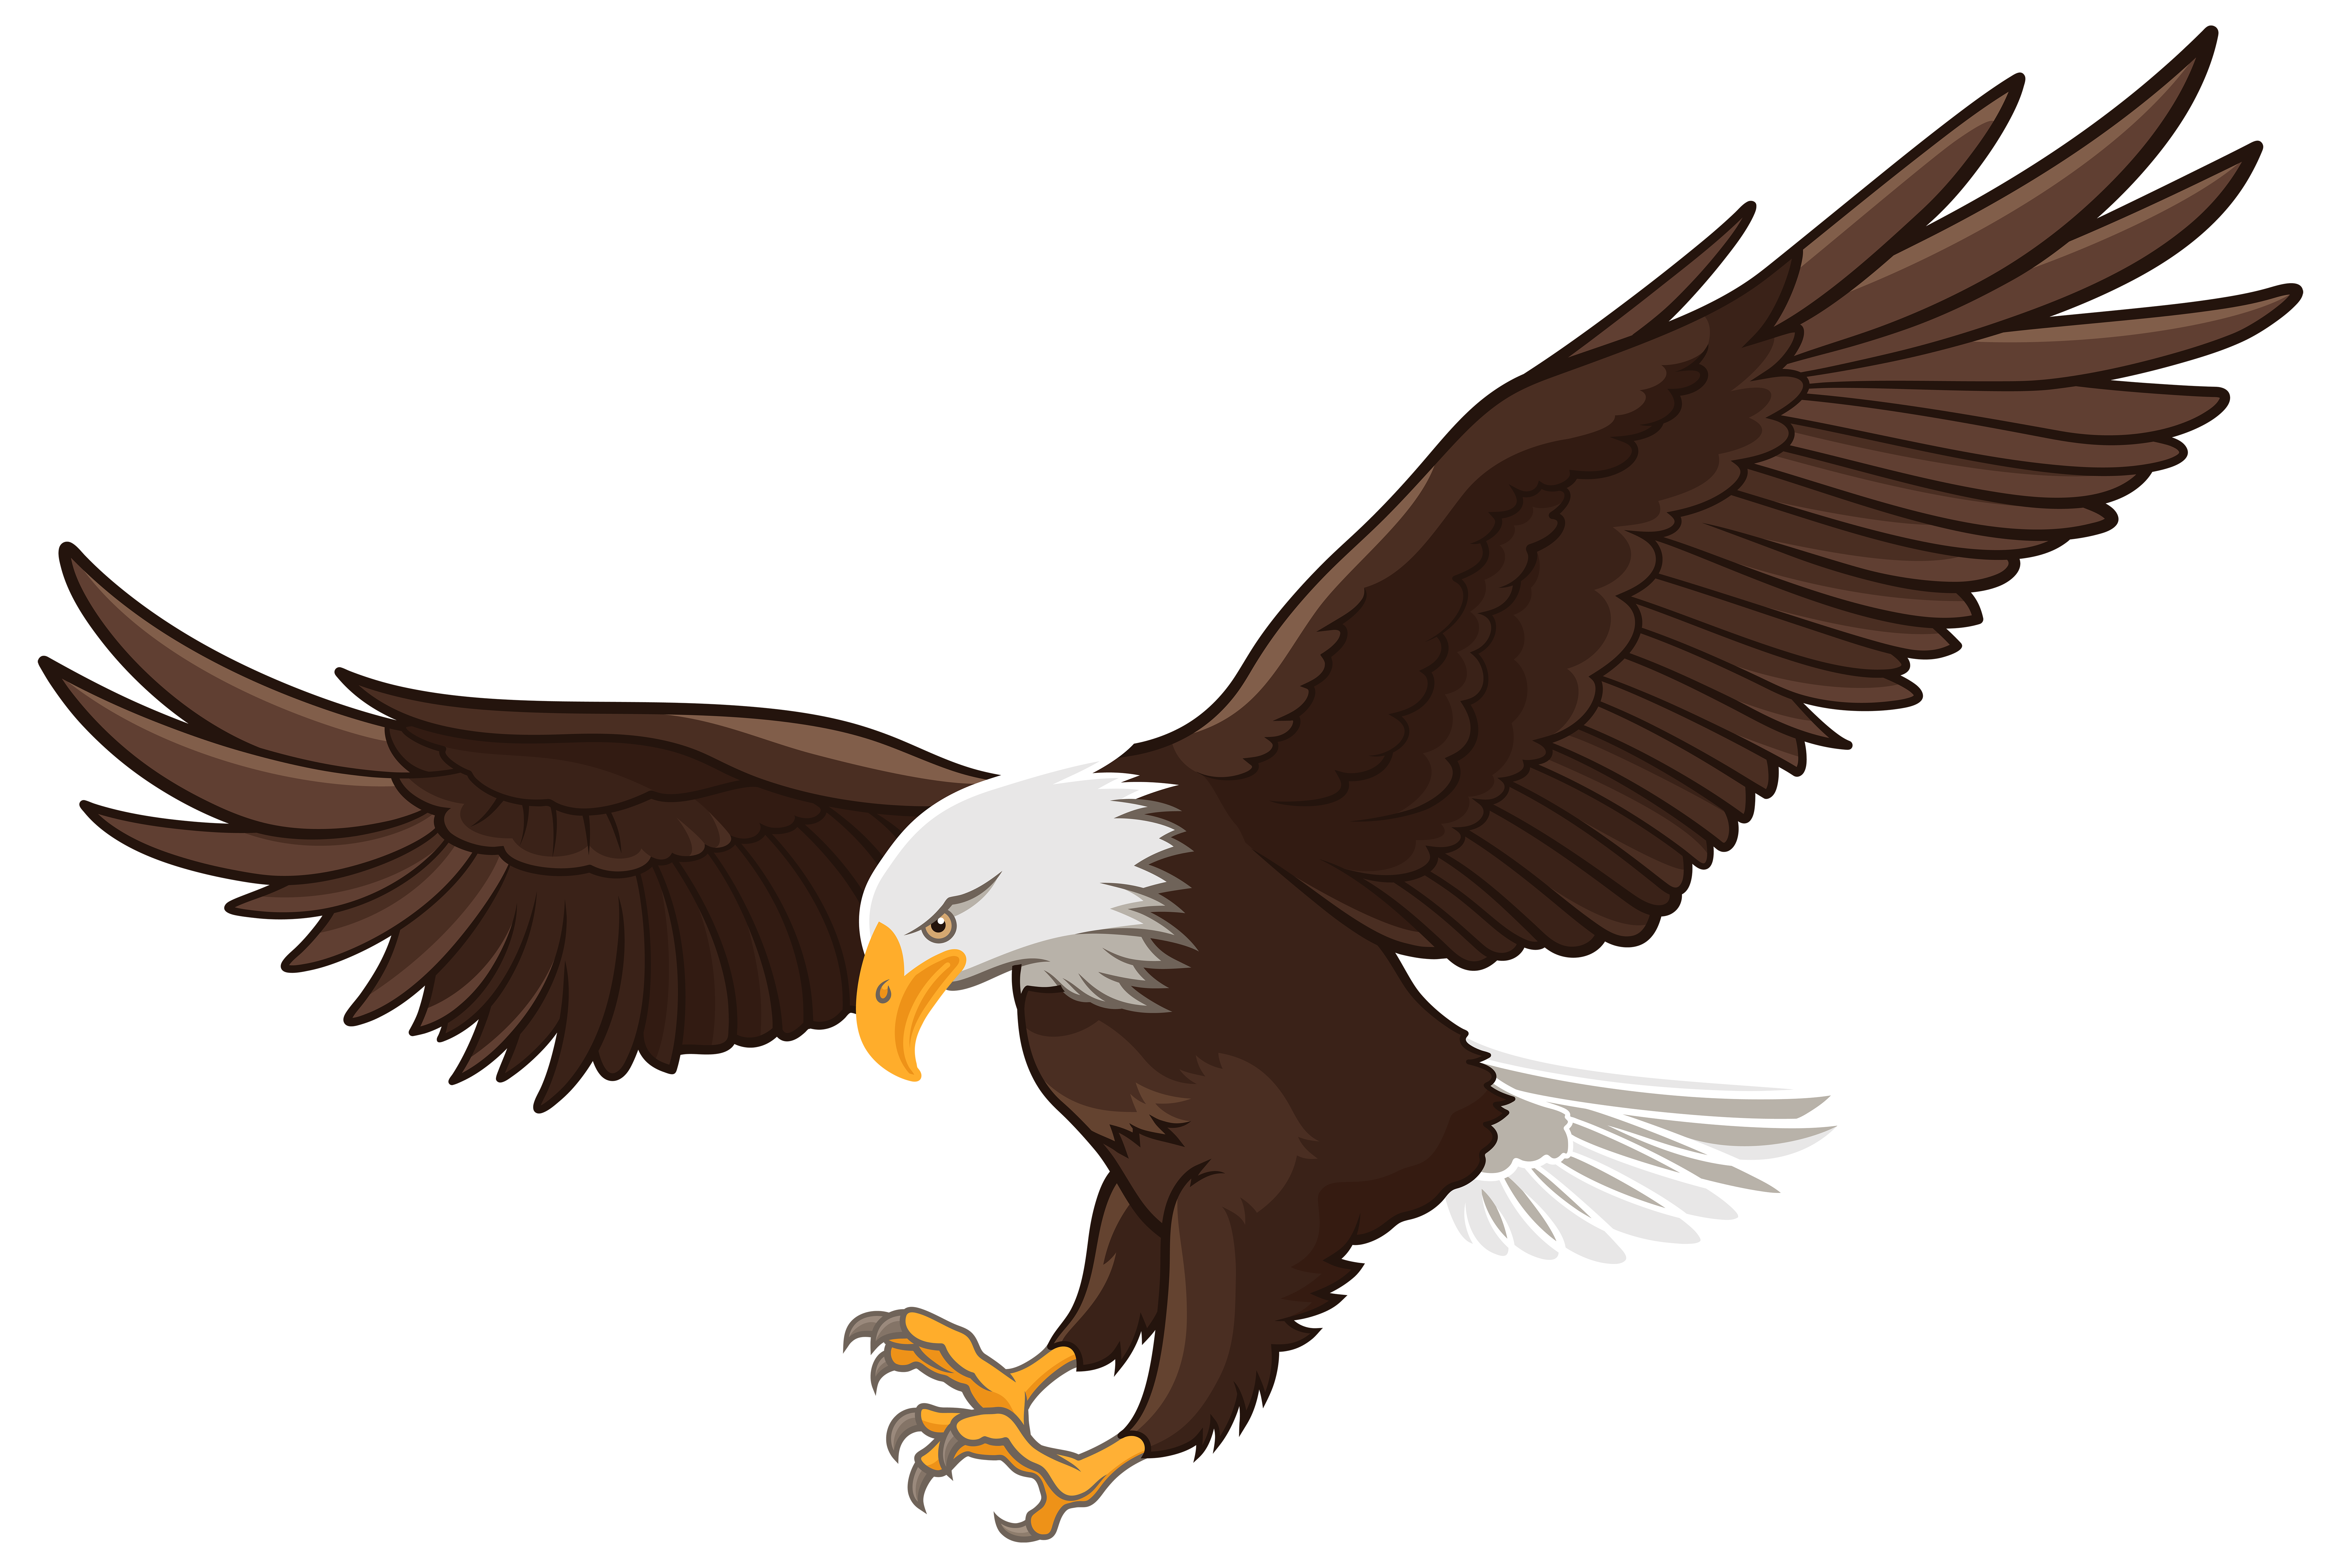 golden eagle clipart at getdrawings com free for personal use rh getdrawings com american eagle clip art free download american eagle clipart black and white